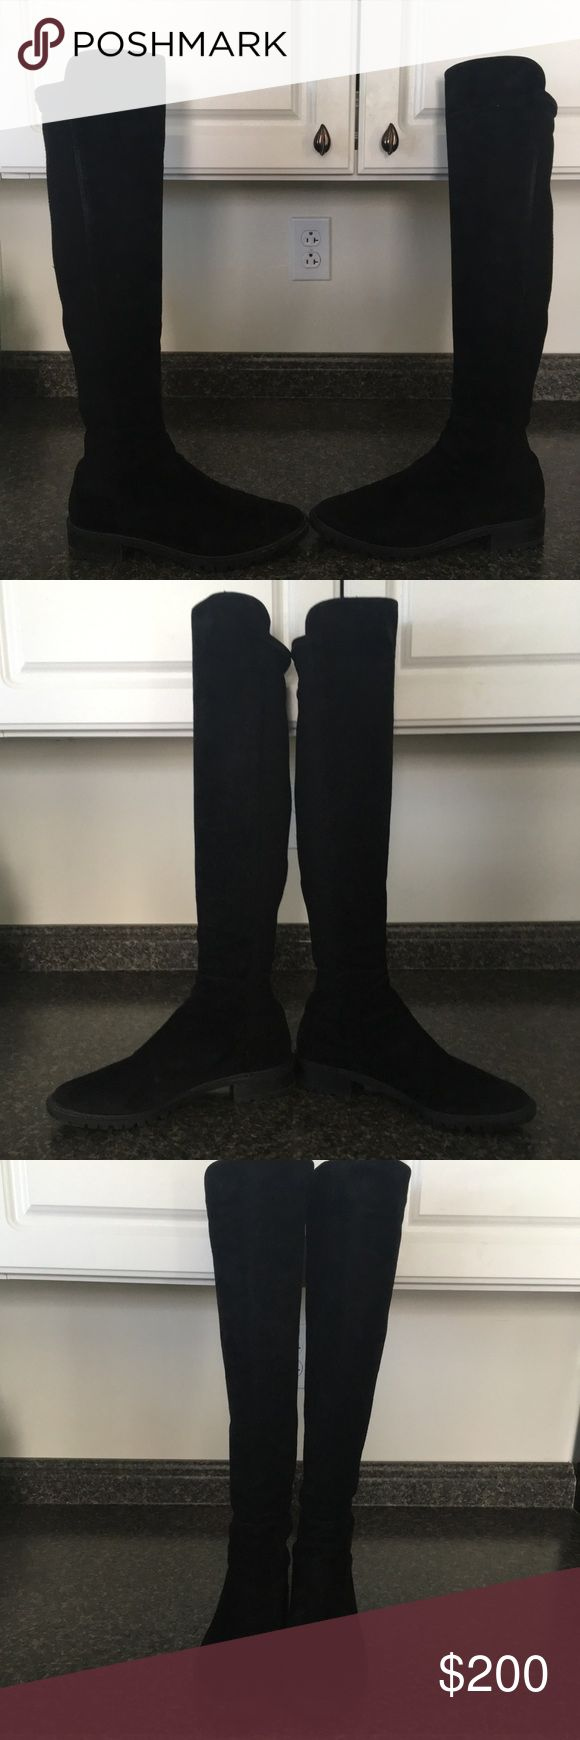 STUART WEITZMAN 5050 Leather Scuba Boots Great Preowned Condition with some light spots on the toes & heels. Women's Size 8 ❤️ Stuart Weitzman Shoes Over the Knee Boots